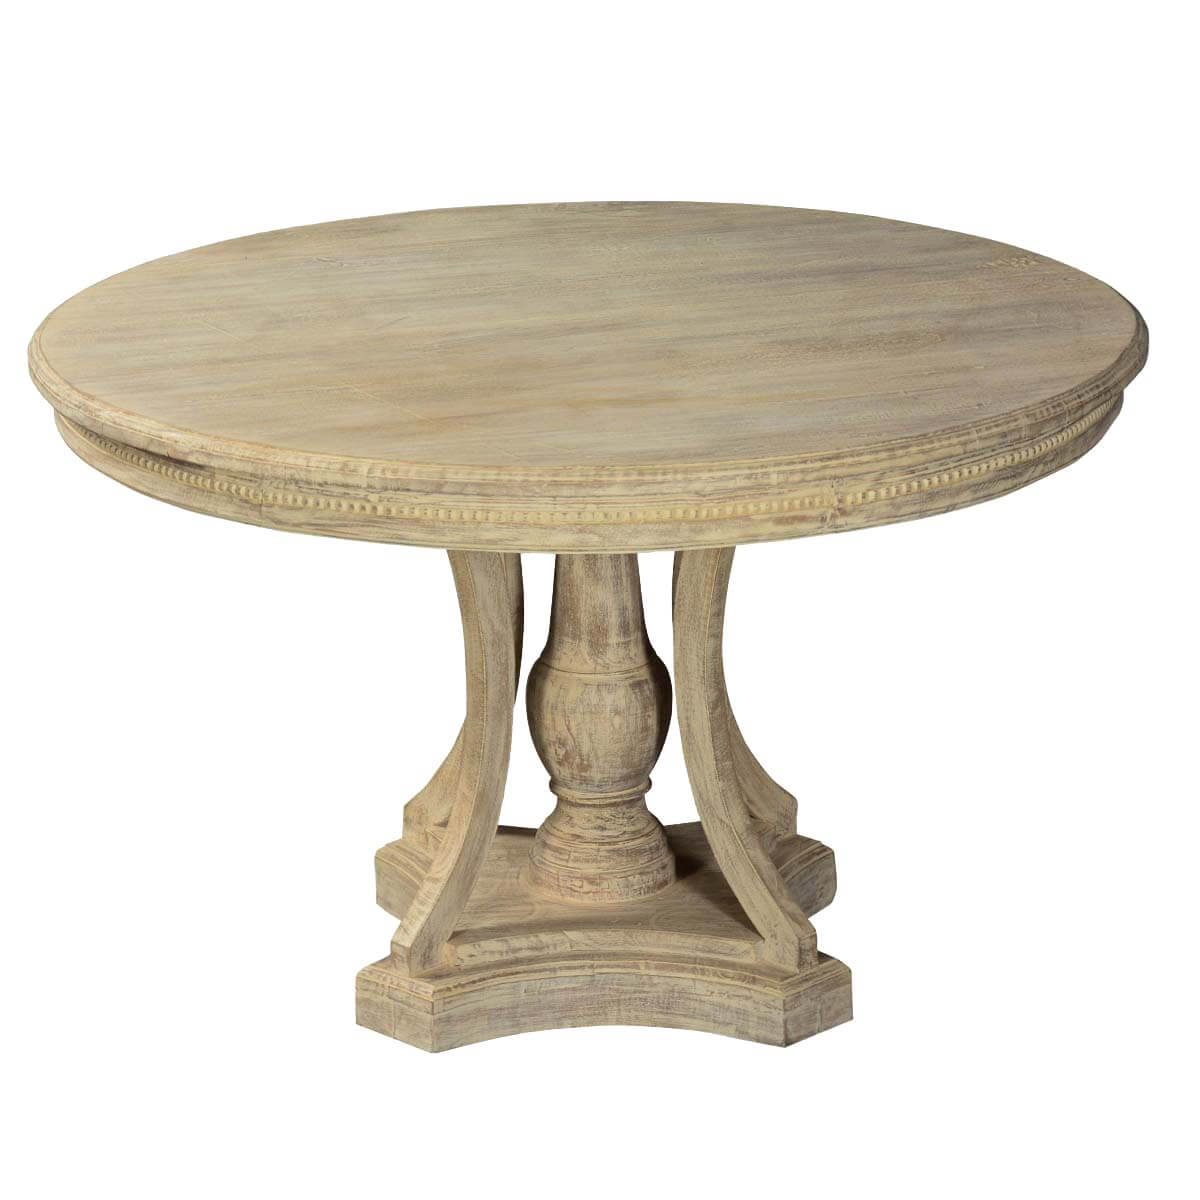 Collection Whitewashed Mango Wood 47 Round Pedestal Dining Table